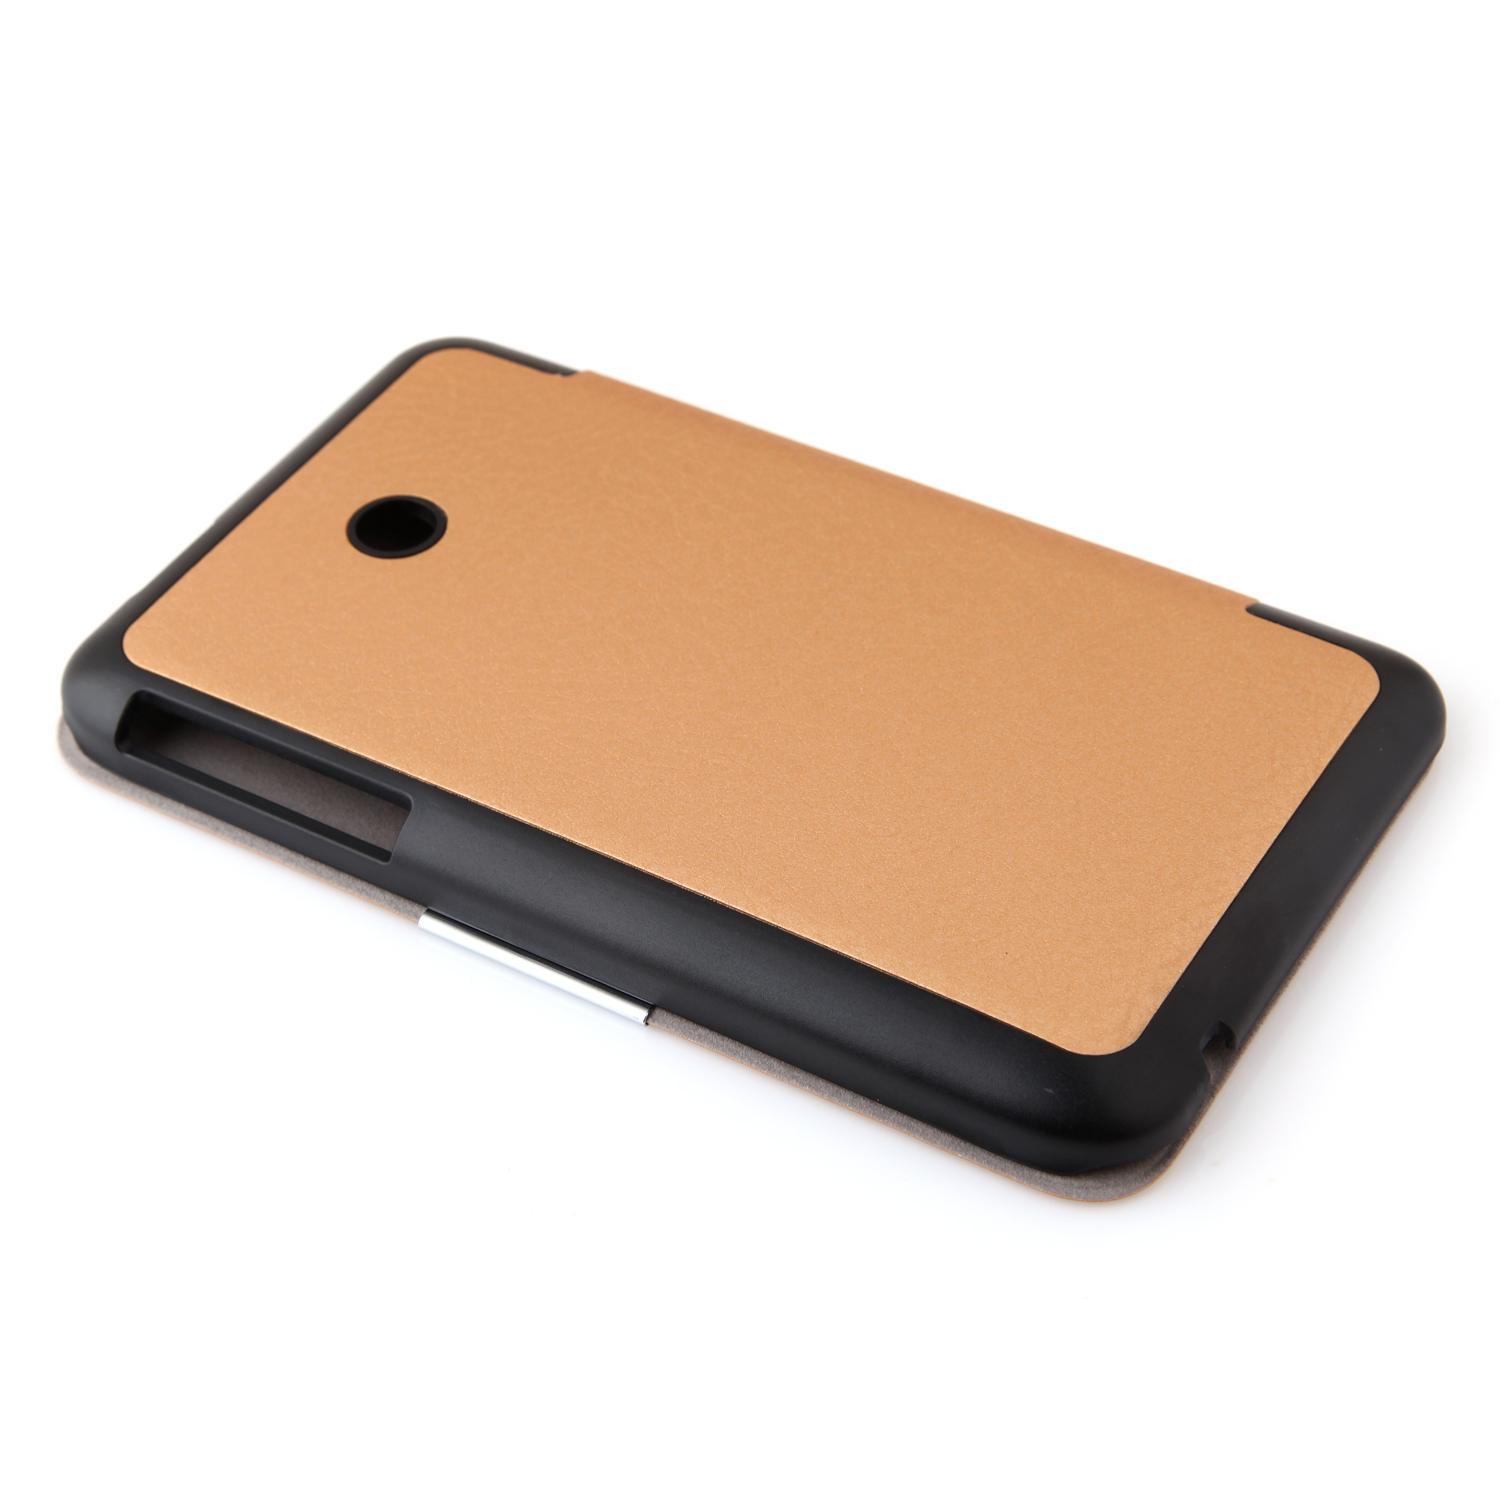 Protective PU Leather Stand Case Cover for Lenovo A3500 Tablet PC KP-69D Golden